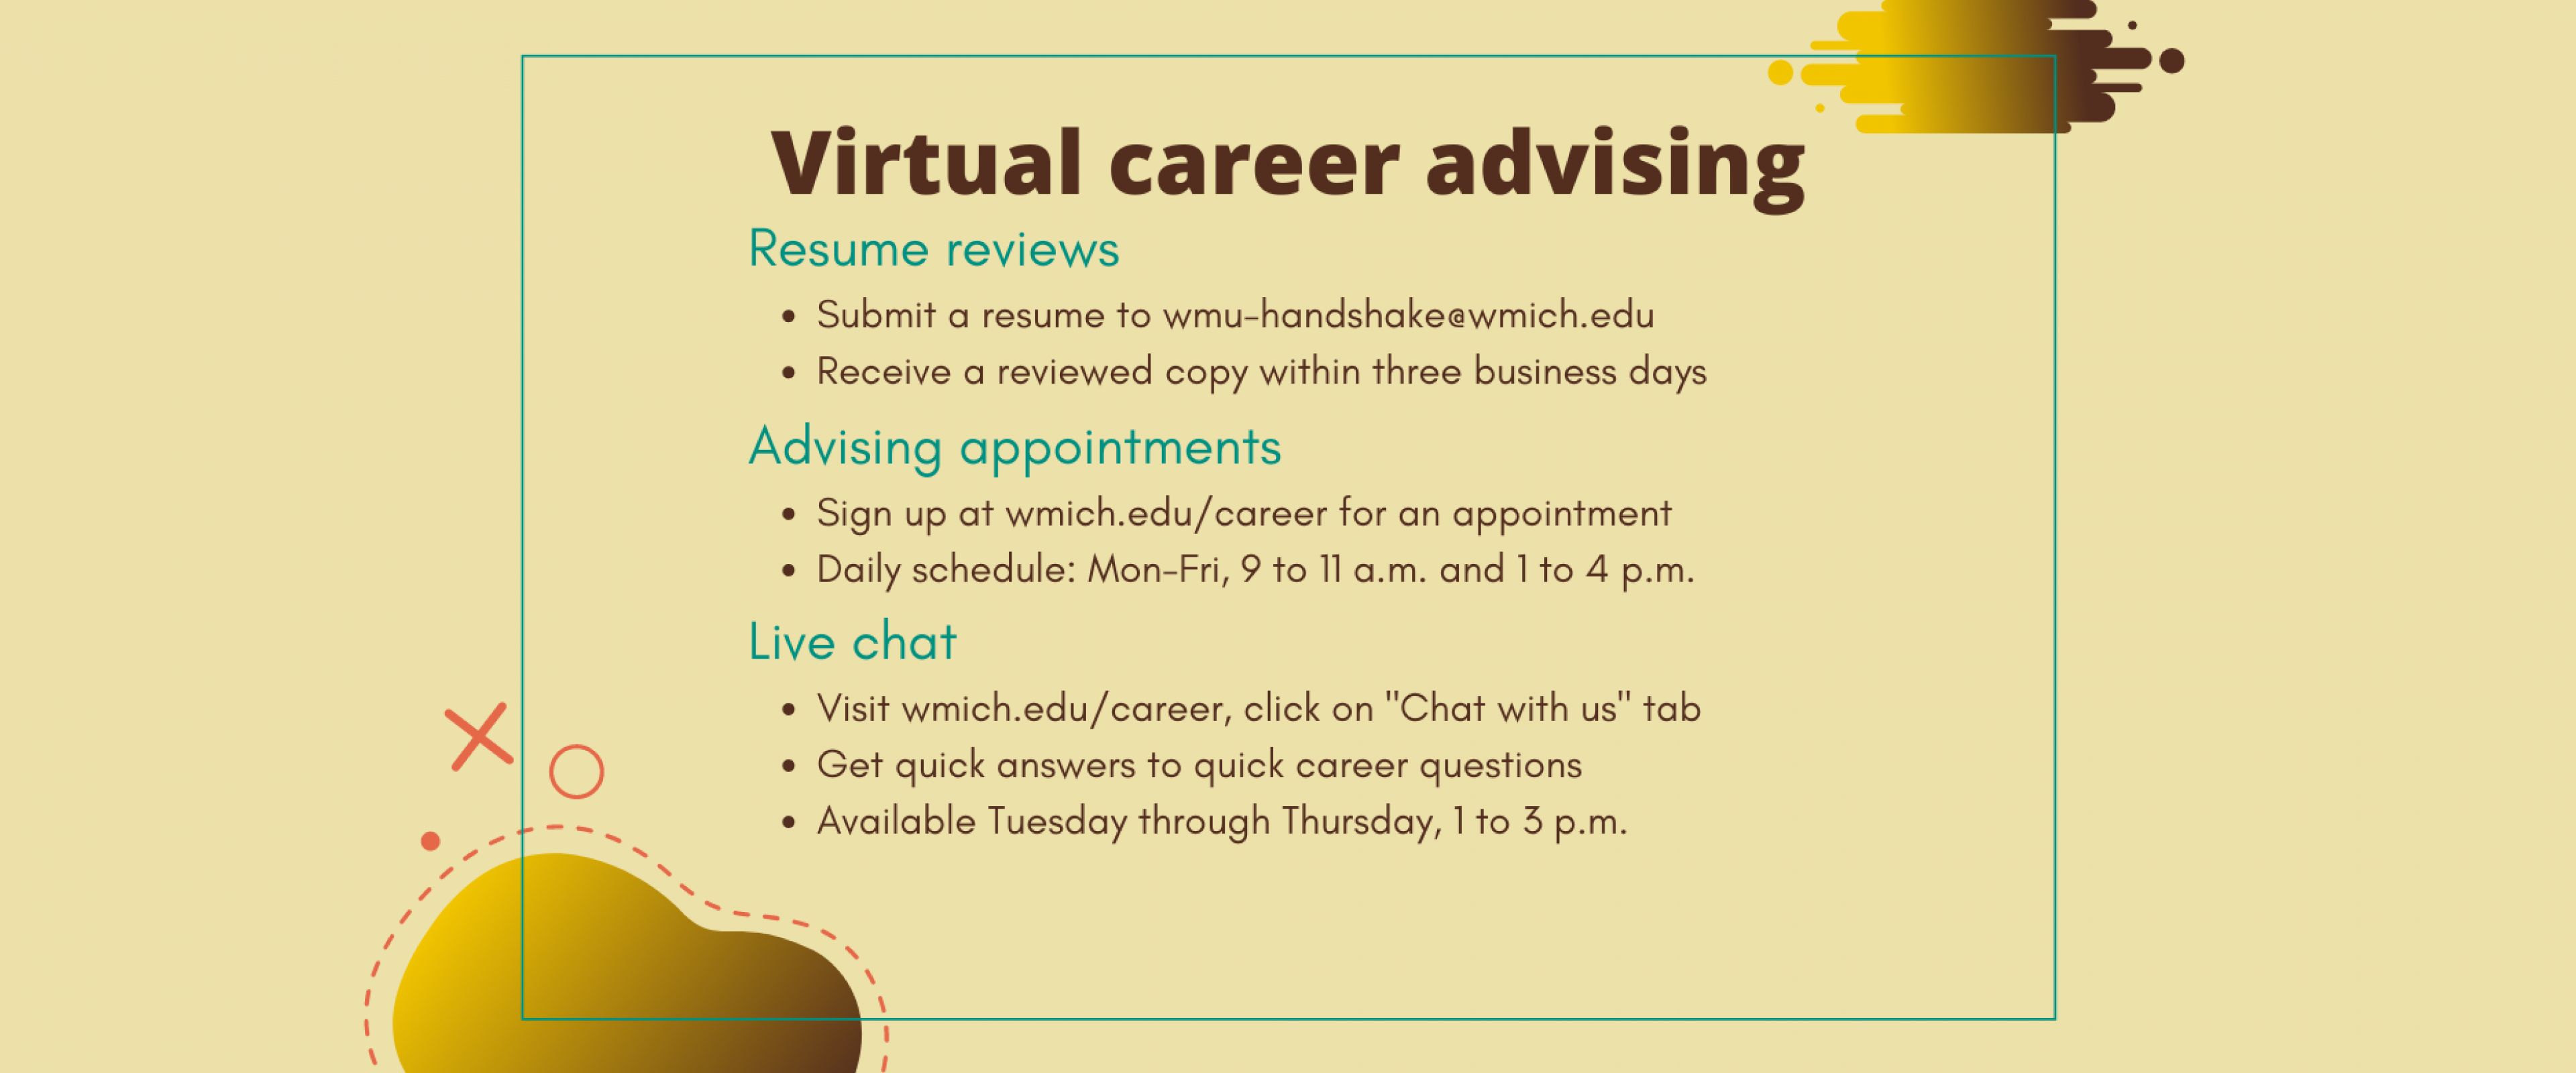 """Virtual career advising - 1) Resume reviews: submit a resume to wmu-handshake@wmich.edu and receive a reviewed copy within three business days; 2) Advising appointments: sign up at wmich.edu/career for an appointment, daily schedule is Monday through Friday 9 to 11 a.m. and 1 to 4 p.m.; 3) Live chat: visit wmich.edu/career, click on the """"Chat with us"""" tab, get quick answers to quick career questions, available Tuesday through Thursday 1 to 3 p.m."""